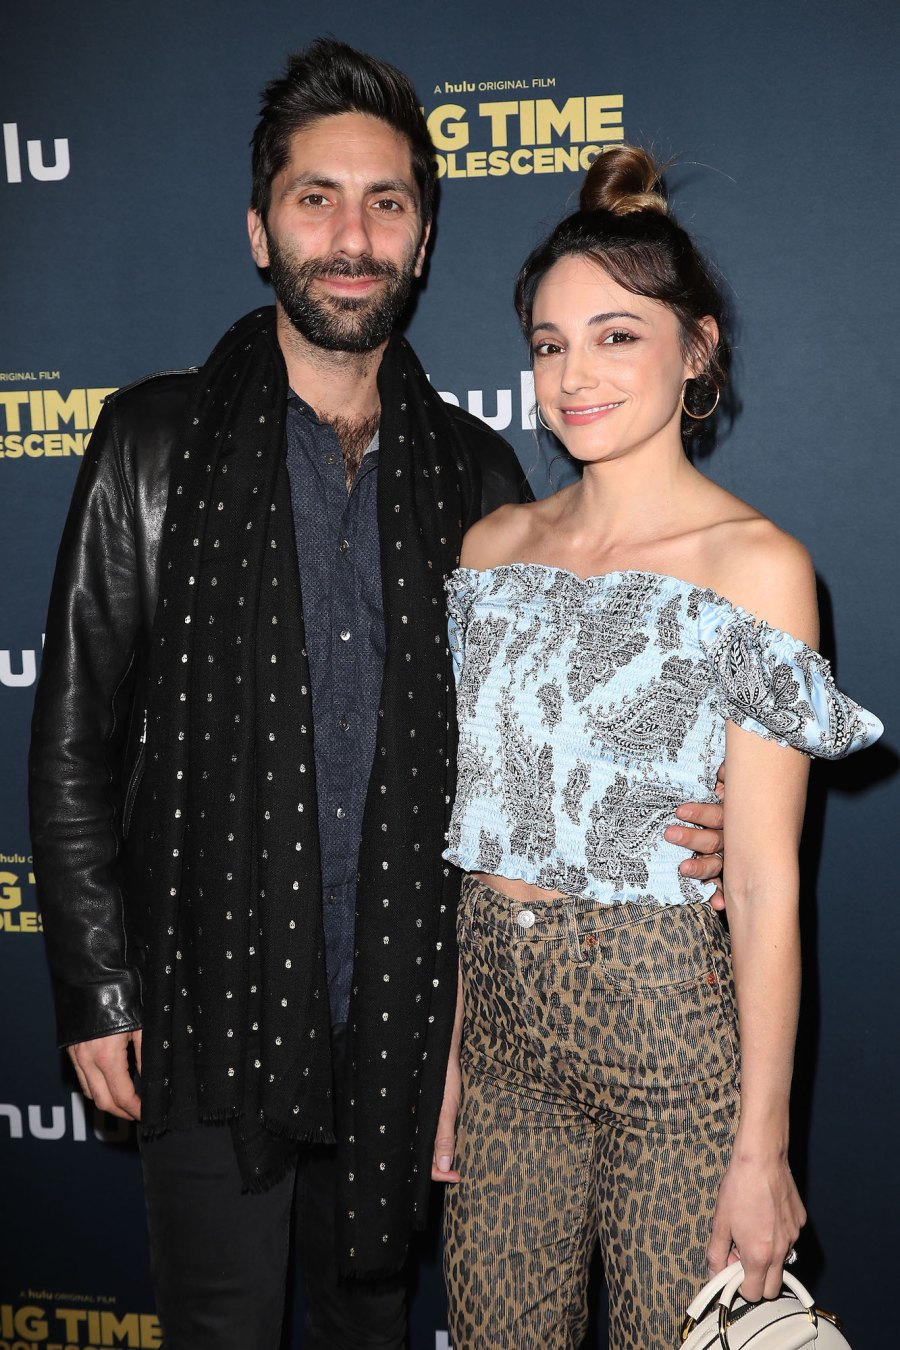 Nev Schulman's Wife Laura Perlongo and More Pregnant Stars in Bathing Suits Promo